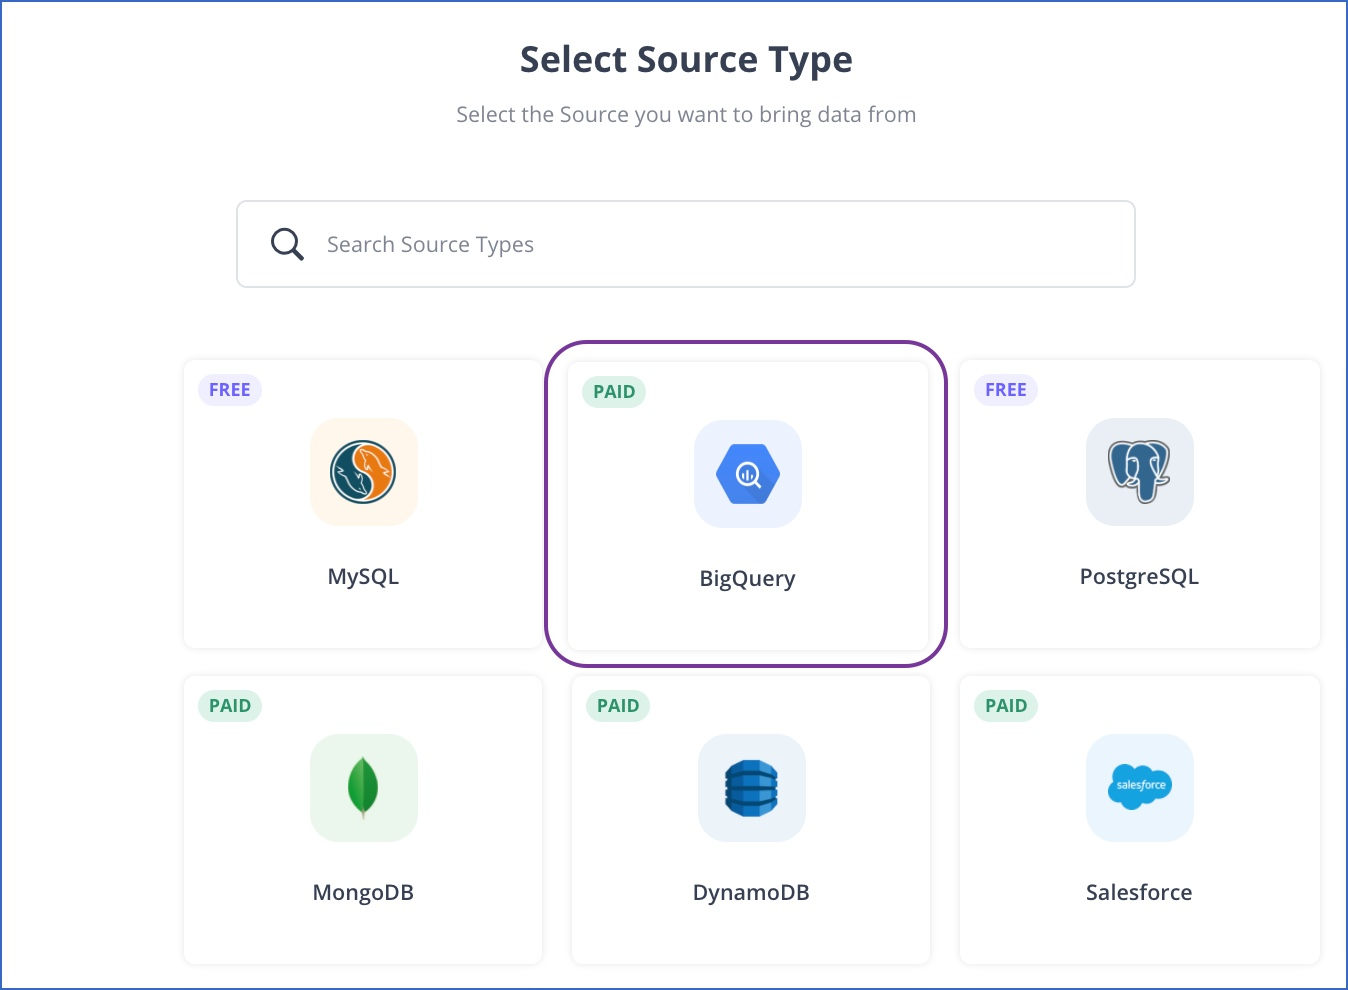 BigQuery Source Type